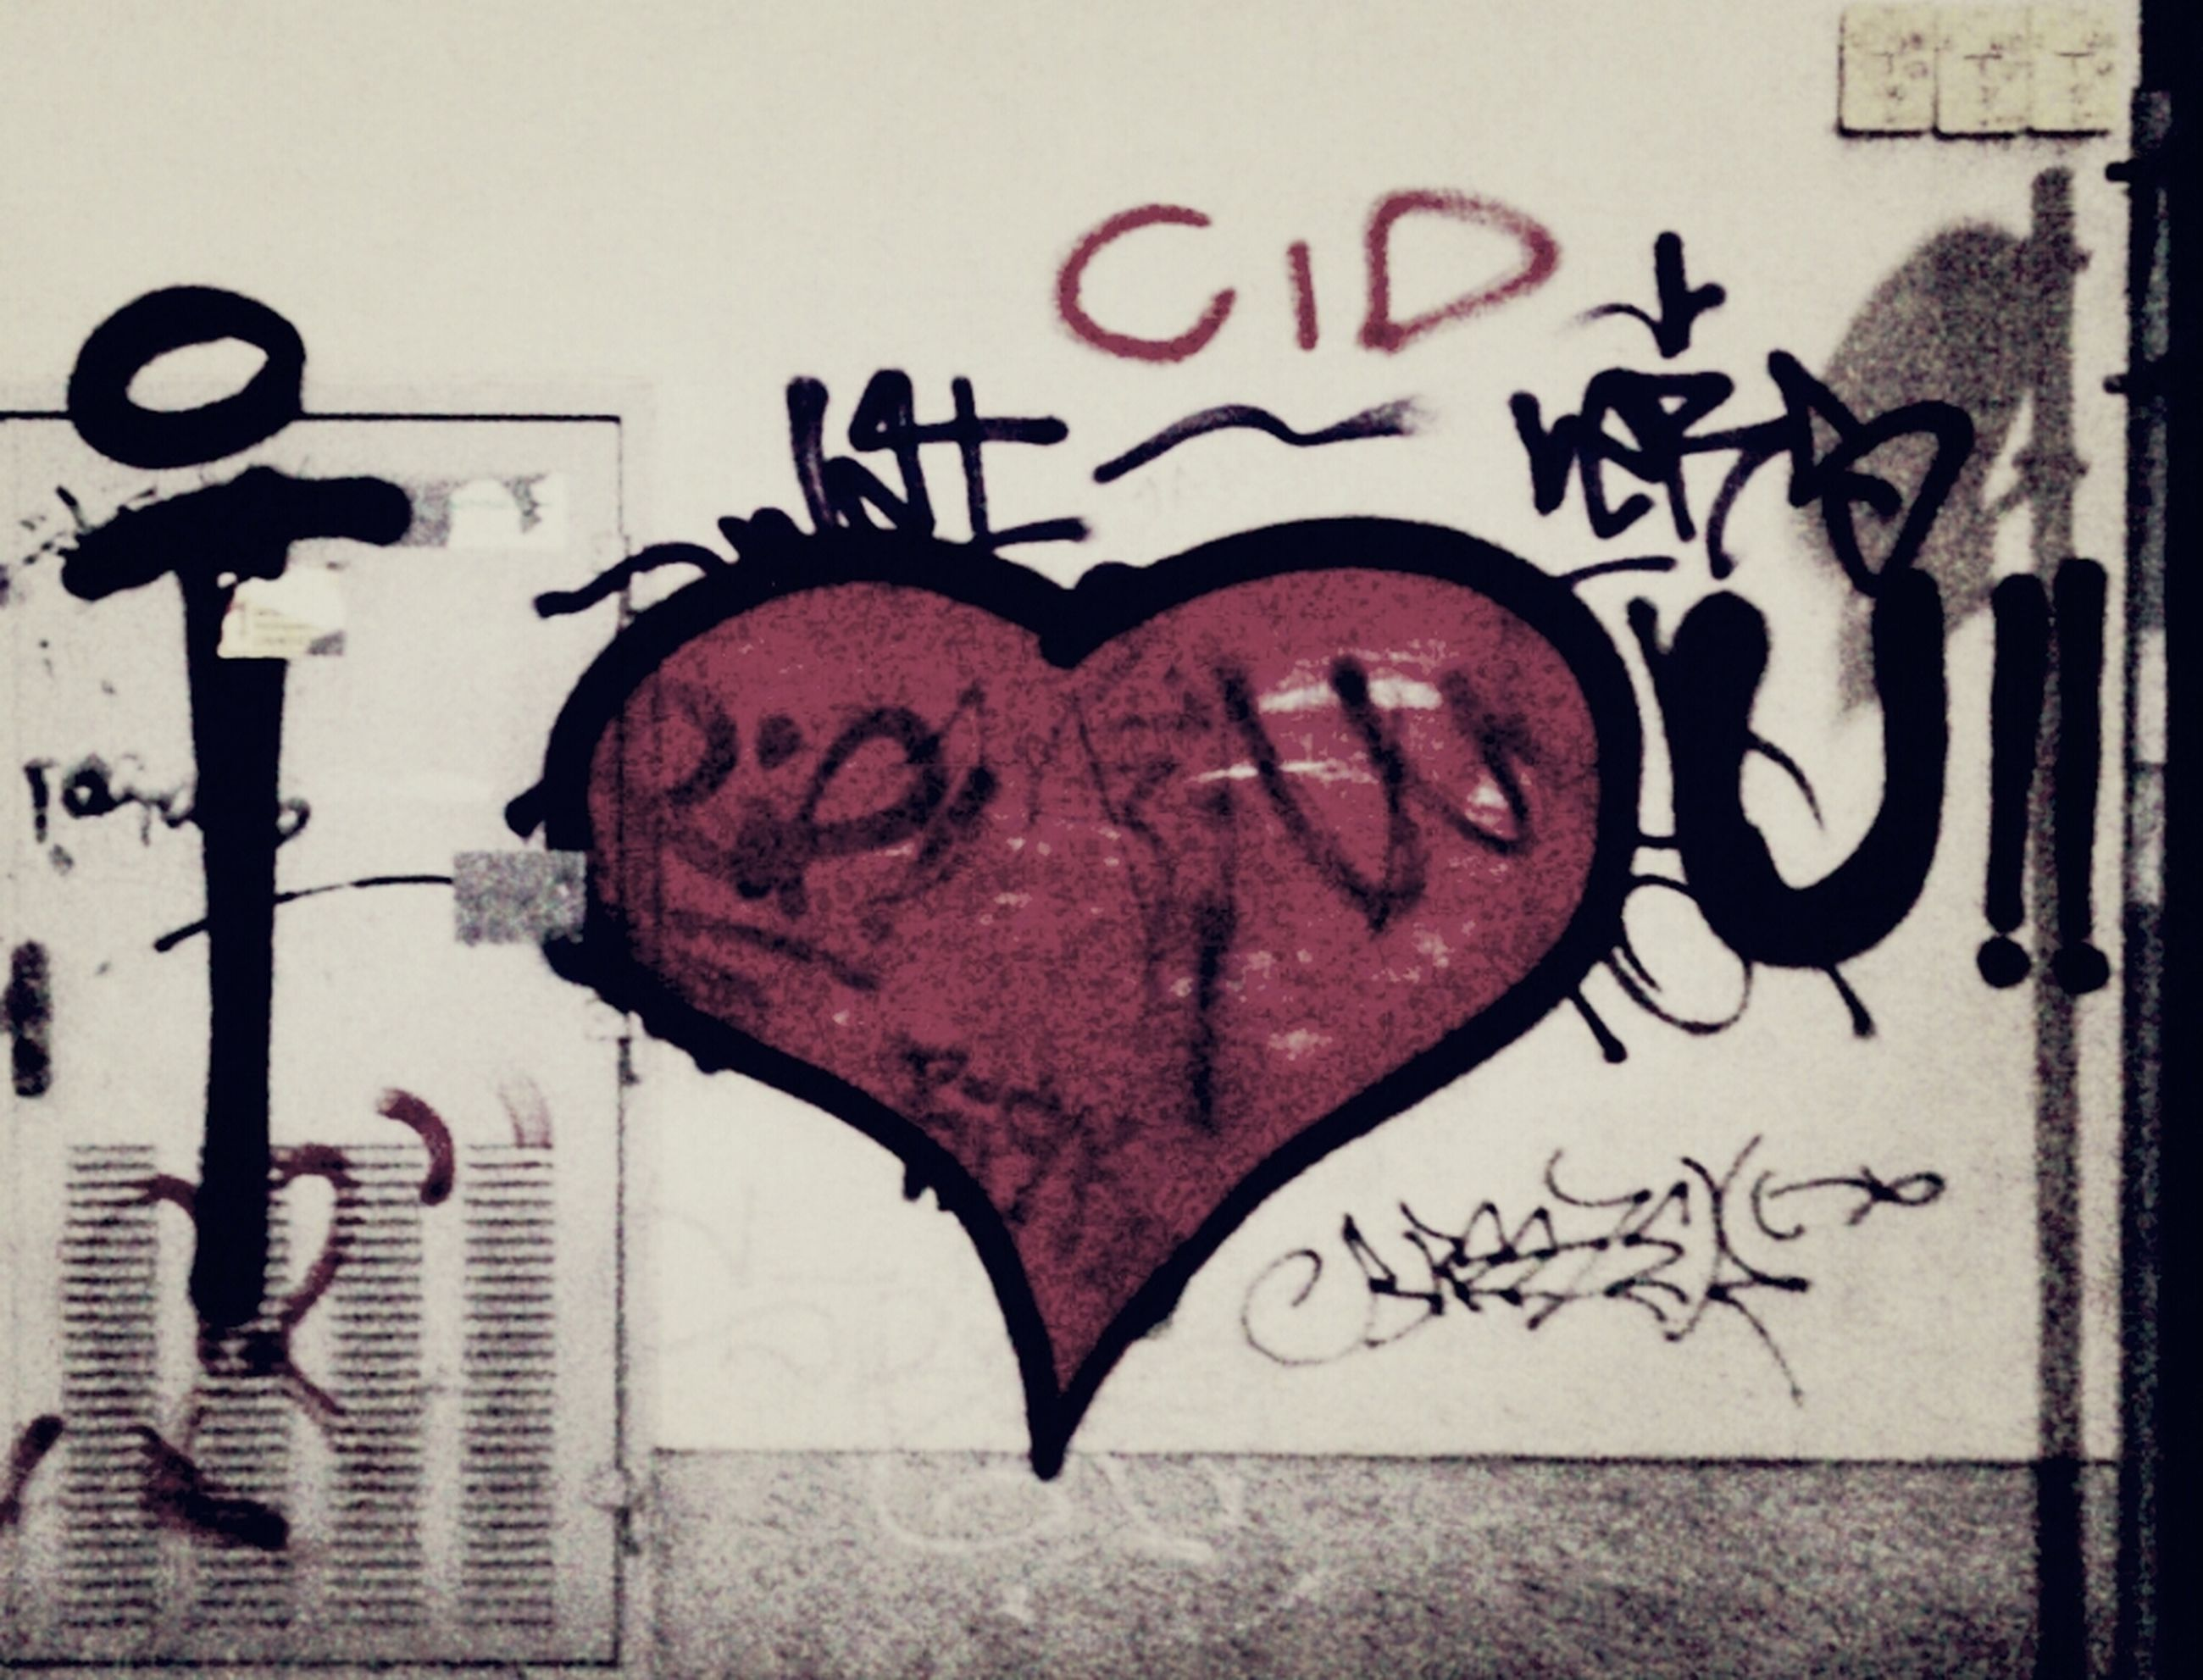 text, western script, communication, creativity, art and craft, art, wall - building feature, graffiti, capital letter, red, close-up, human representation, love, heart shape, built structure, architecture, animal representation, wall, message, sign